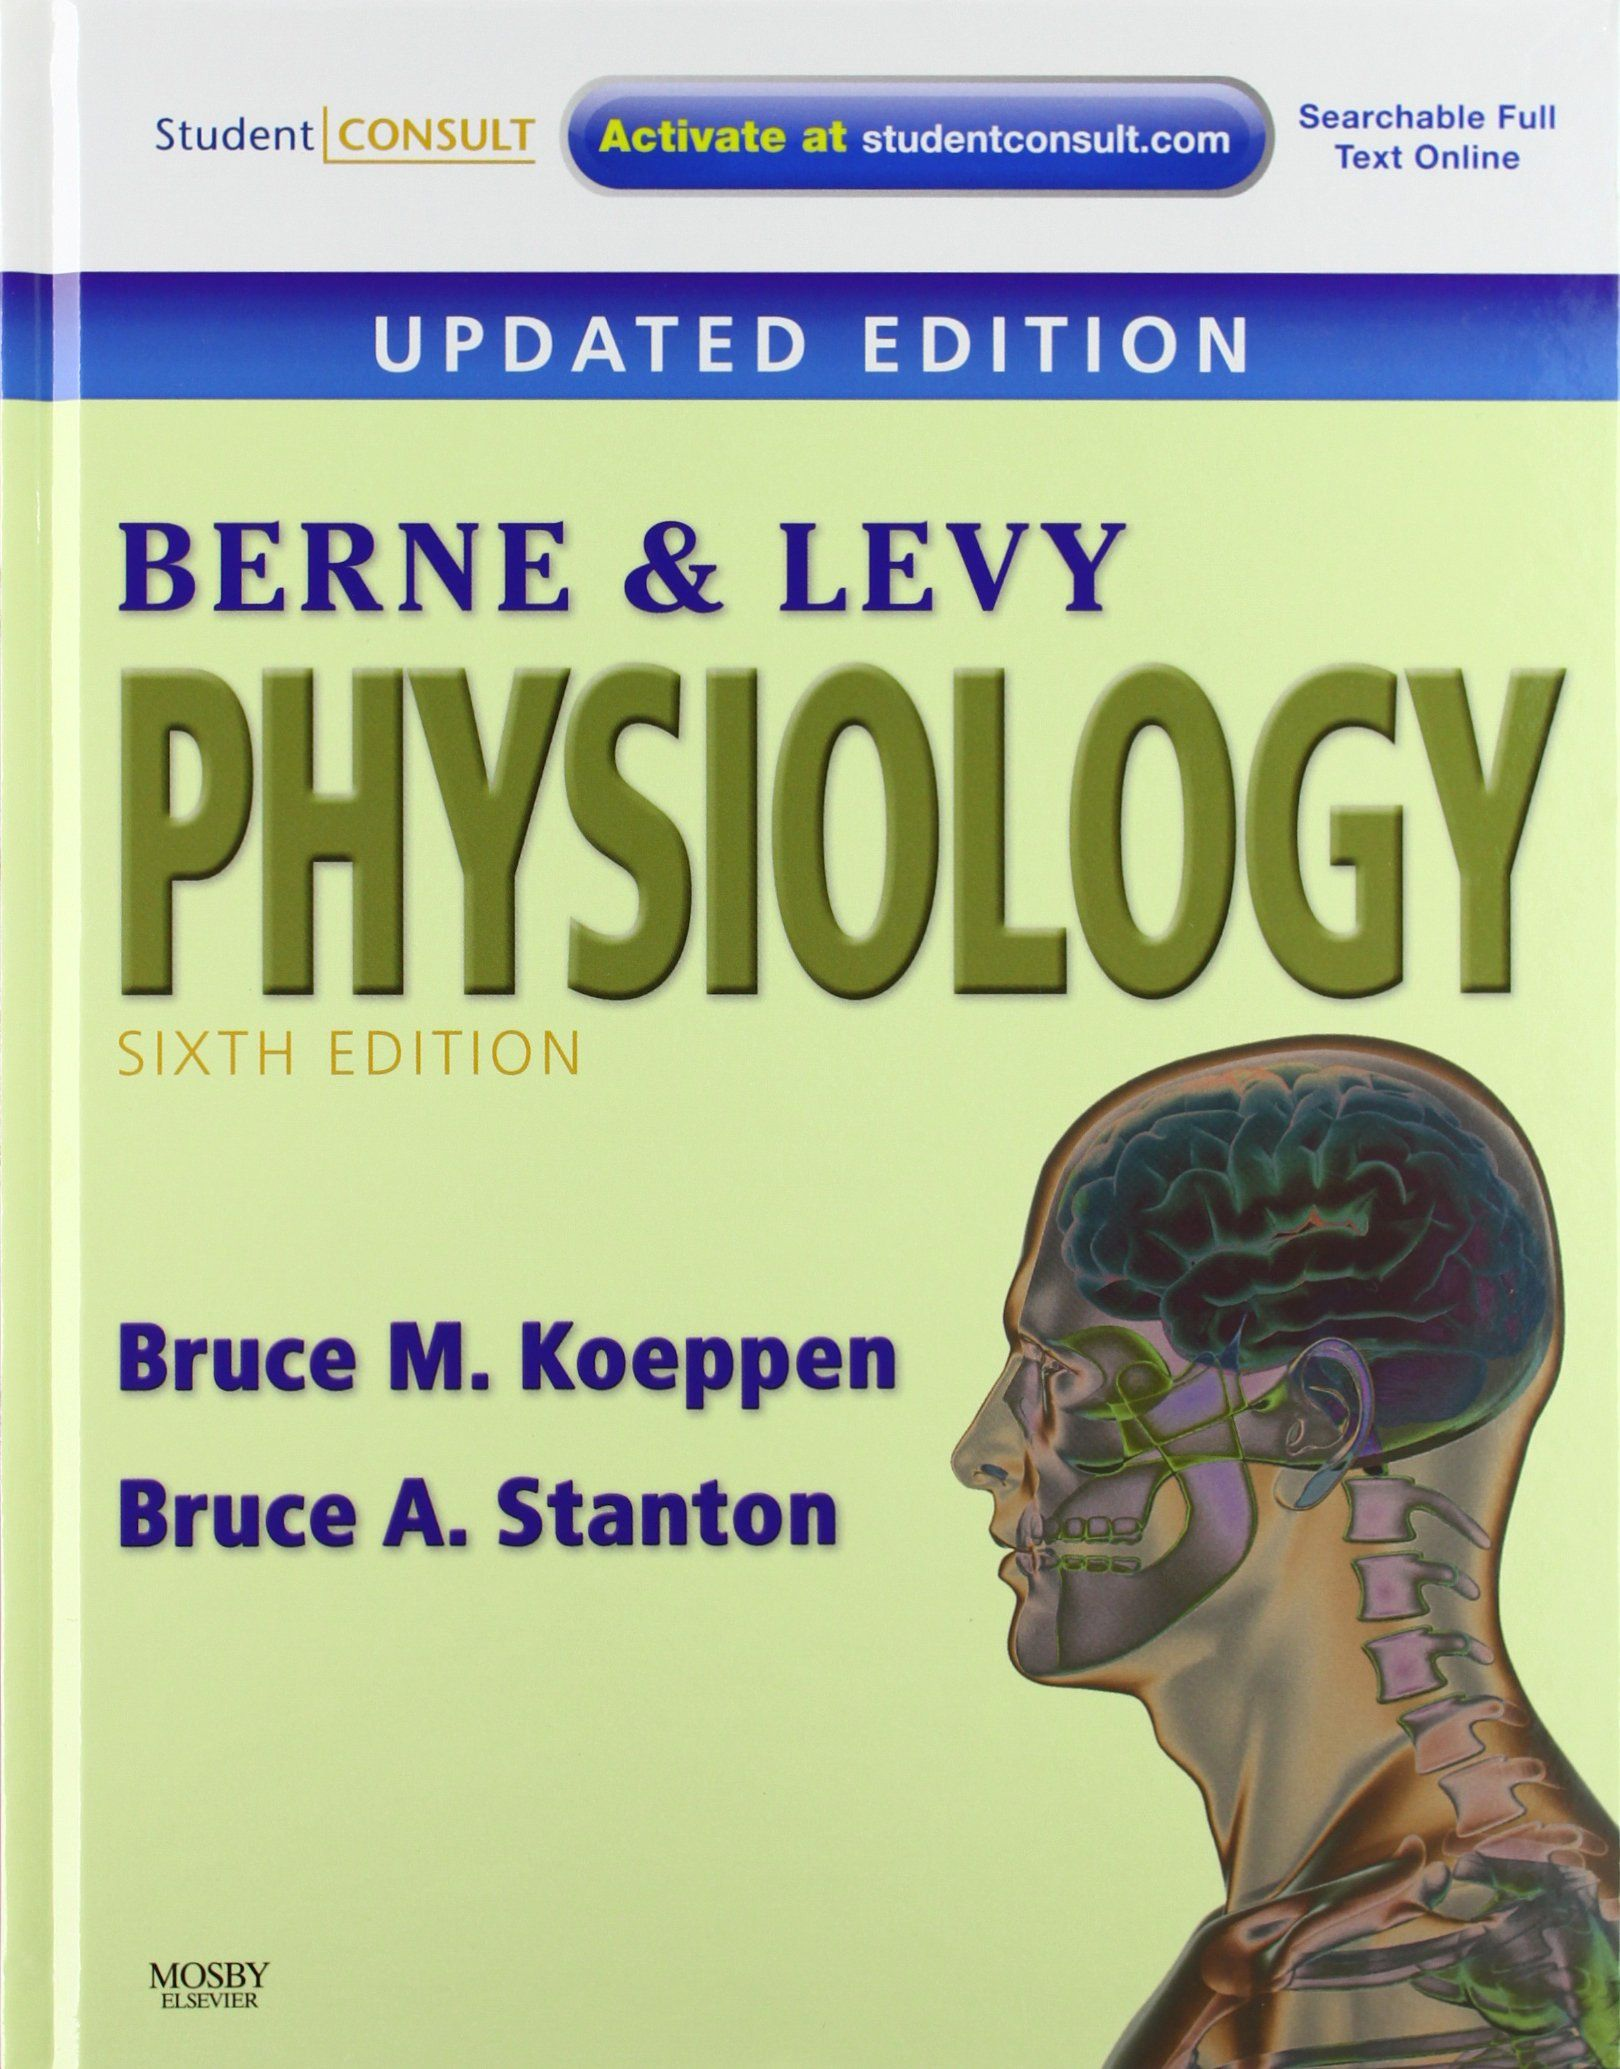 Berne levy physiology updated edition 6e bruce m koeppen md berne levy physiology updated edition 6e bruce m koeppen md phd fandeluxe Choice Image